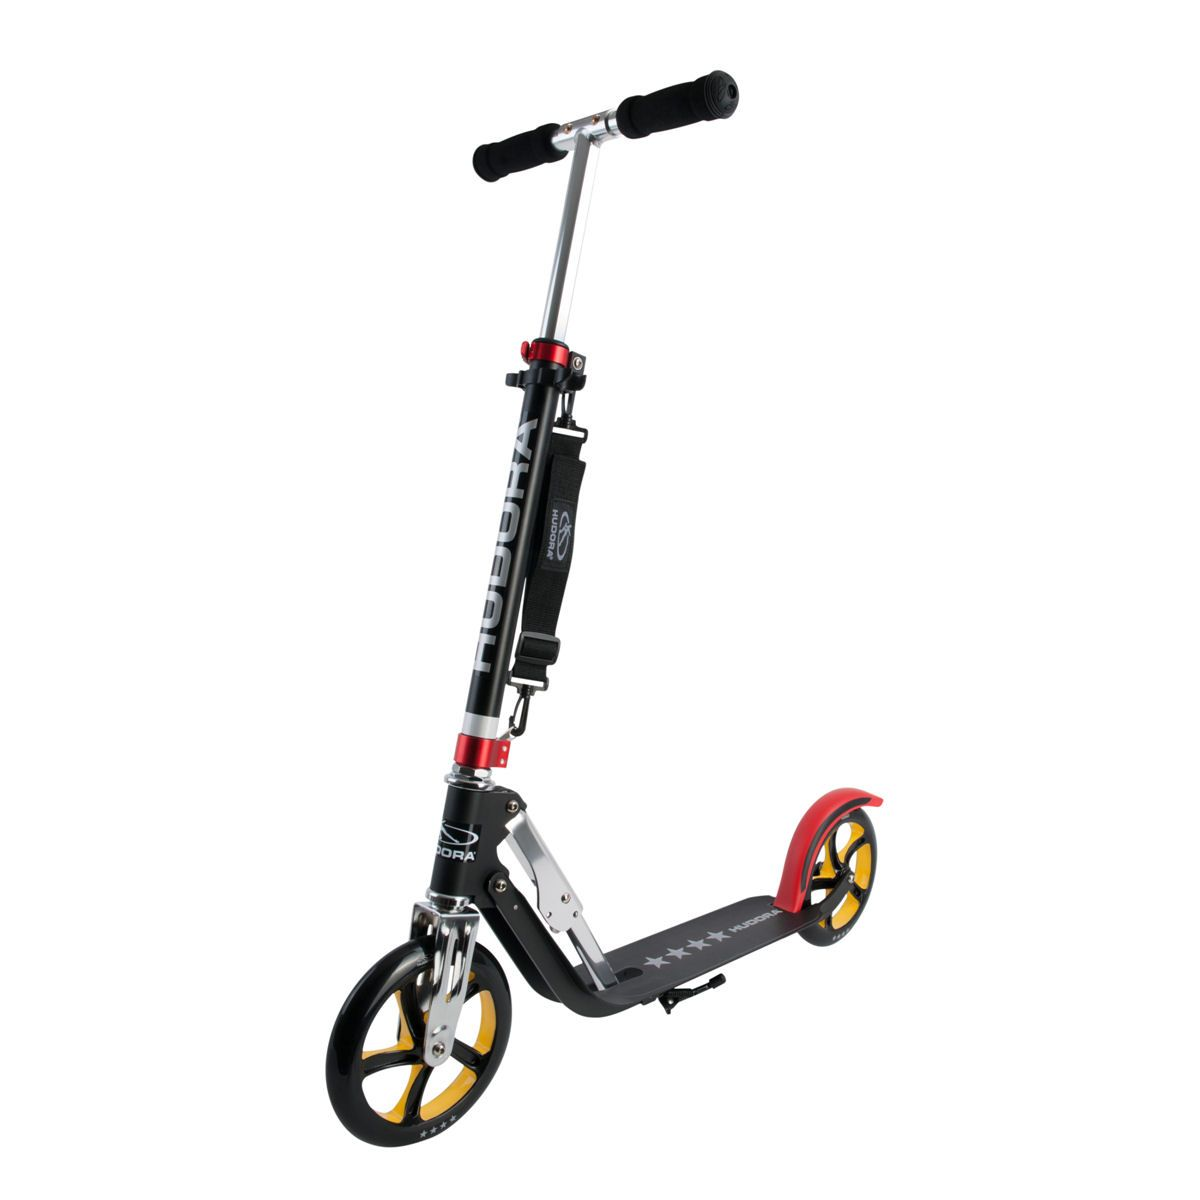 hudora big wheel 205 roller rx pro 205 scooter schwarz rot gold ebay. Black Bedroom Furniture Sets. Home Design Ideas